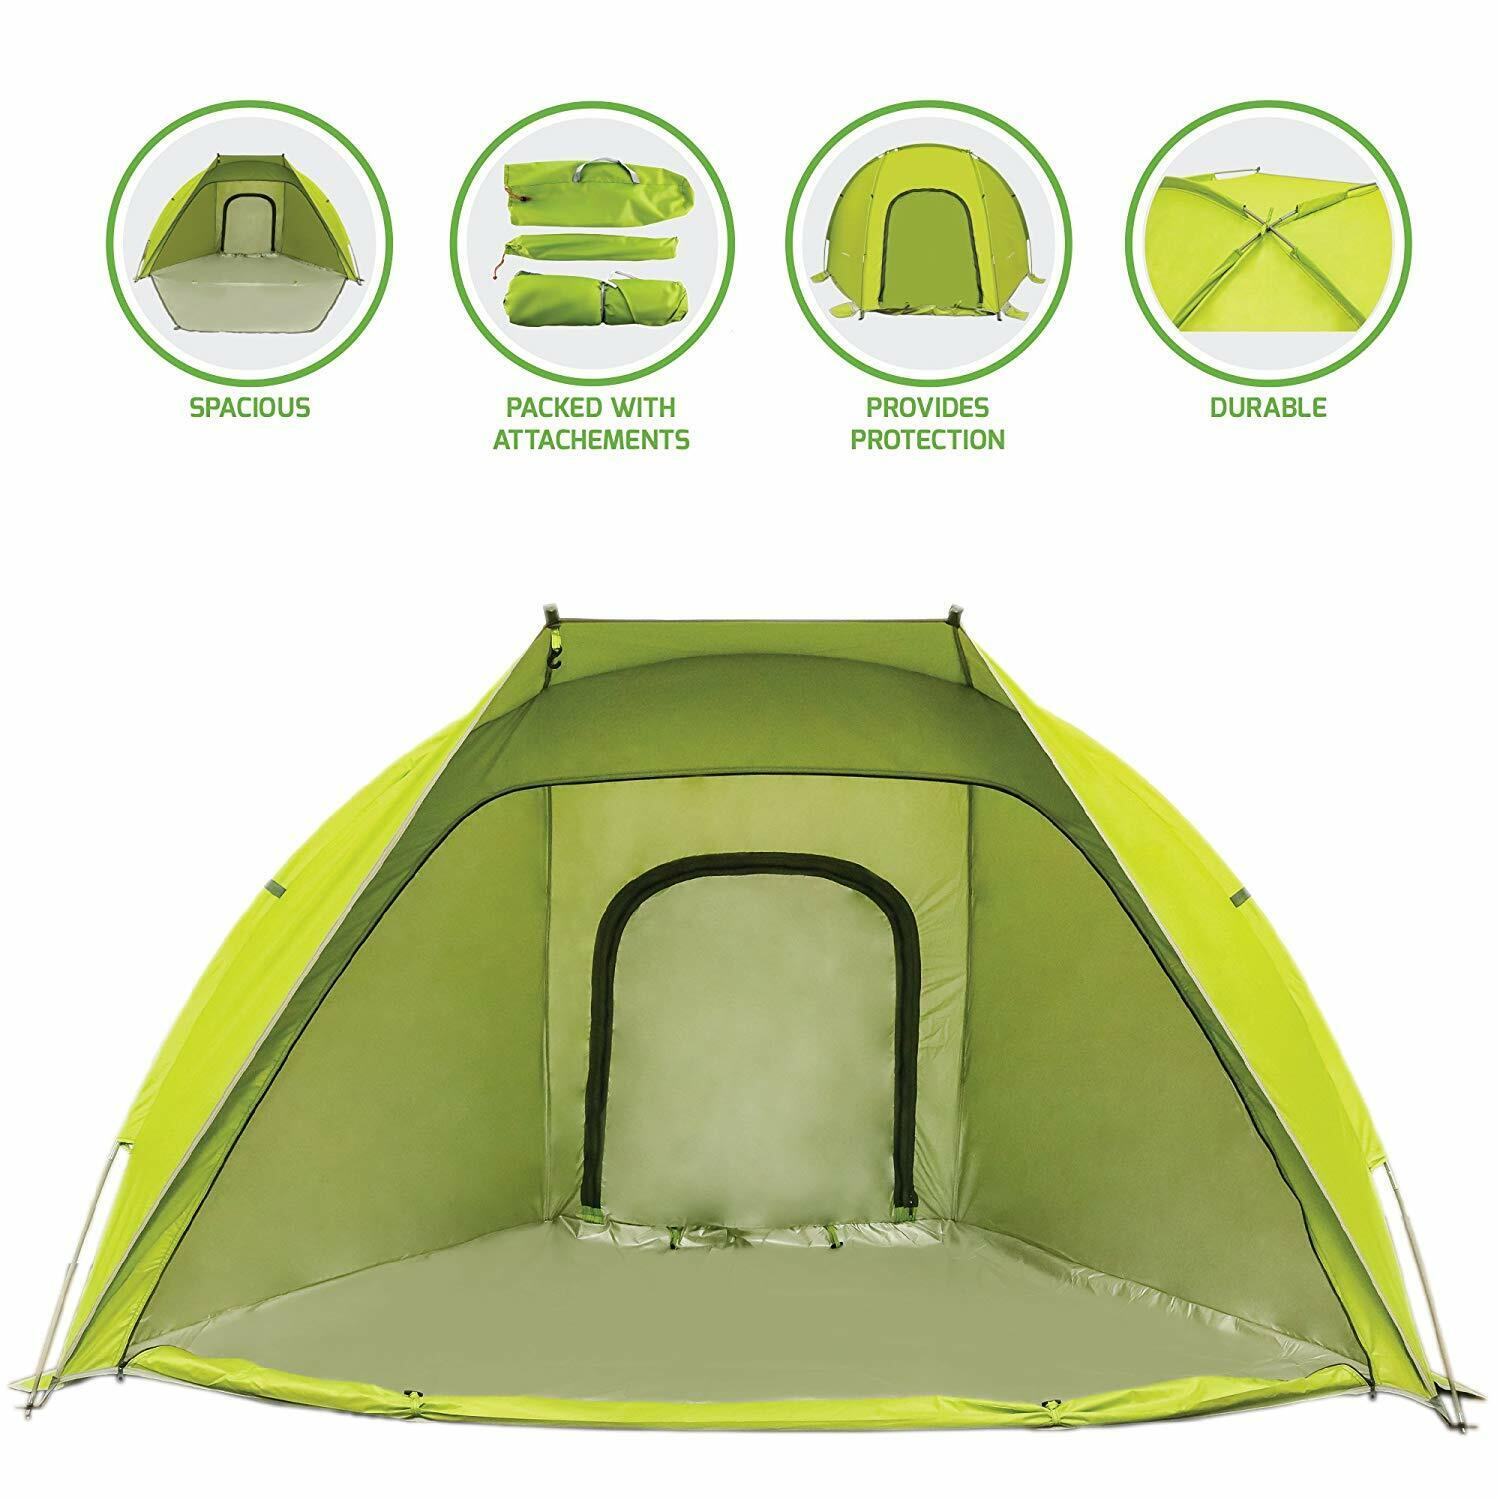 Ovente Two Person Camping Dome Tent Waterproof & Windproof Outdoor Green TB0174G